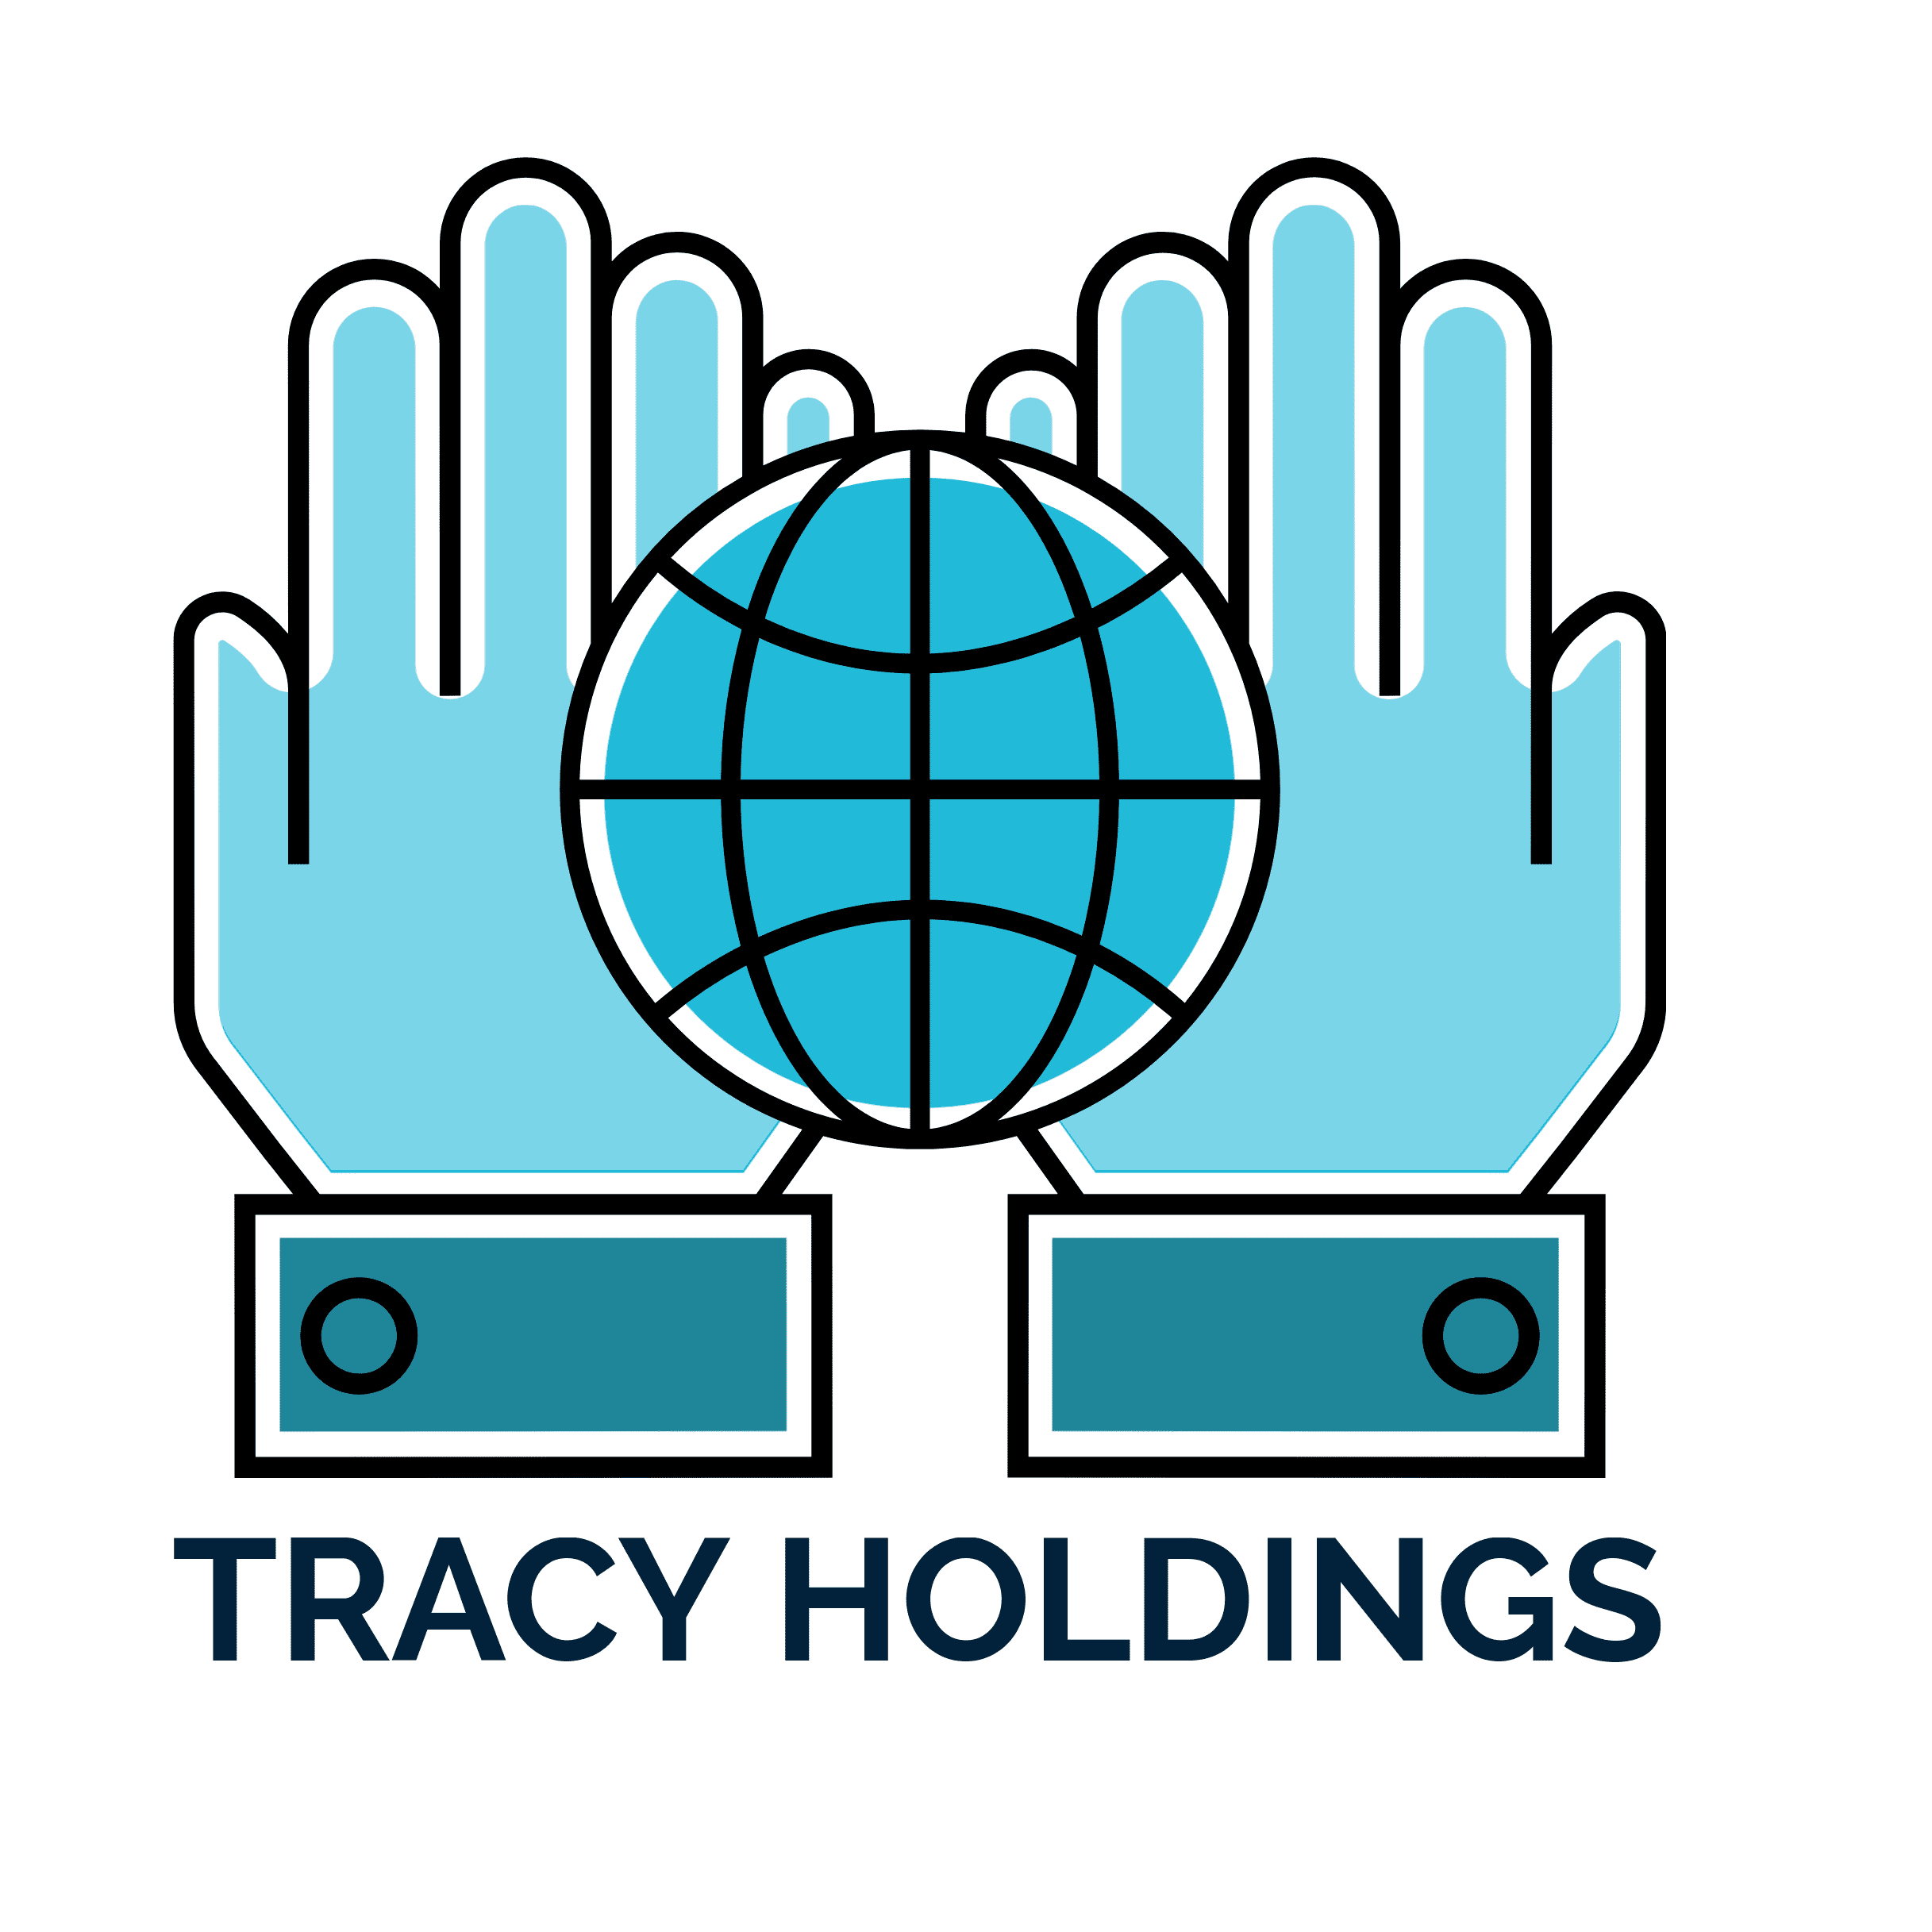 Tracy Holdings